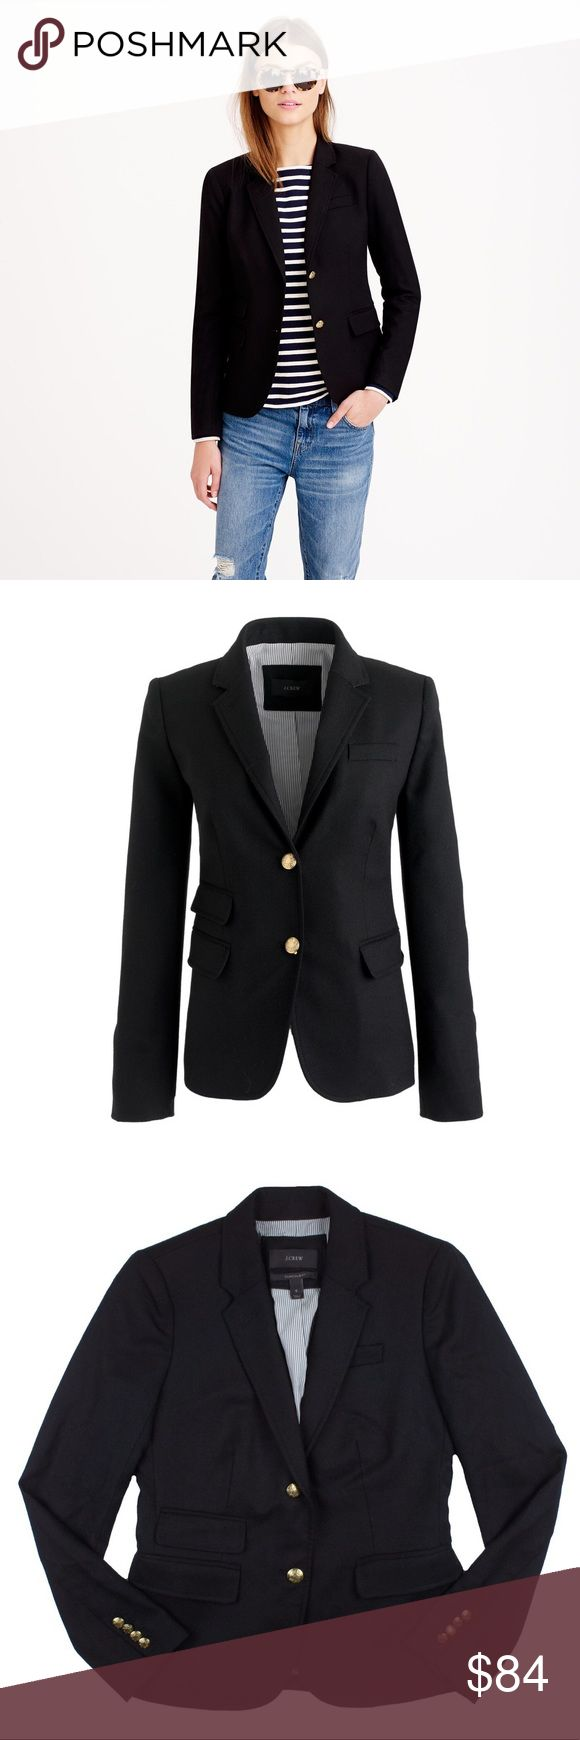 "JCREW Black Wool Schoolboy Blazer Jacket Absolutely excellent condition. Worn once - if that. This black wool Schoolboy blazer from JCREW features gold tone button closures, front pockets and is fully lined. Measures: bust: 35"", total length: 23"", sleeves: 24"" J. Crew Jackets & Coats Blazers"